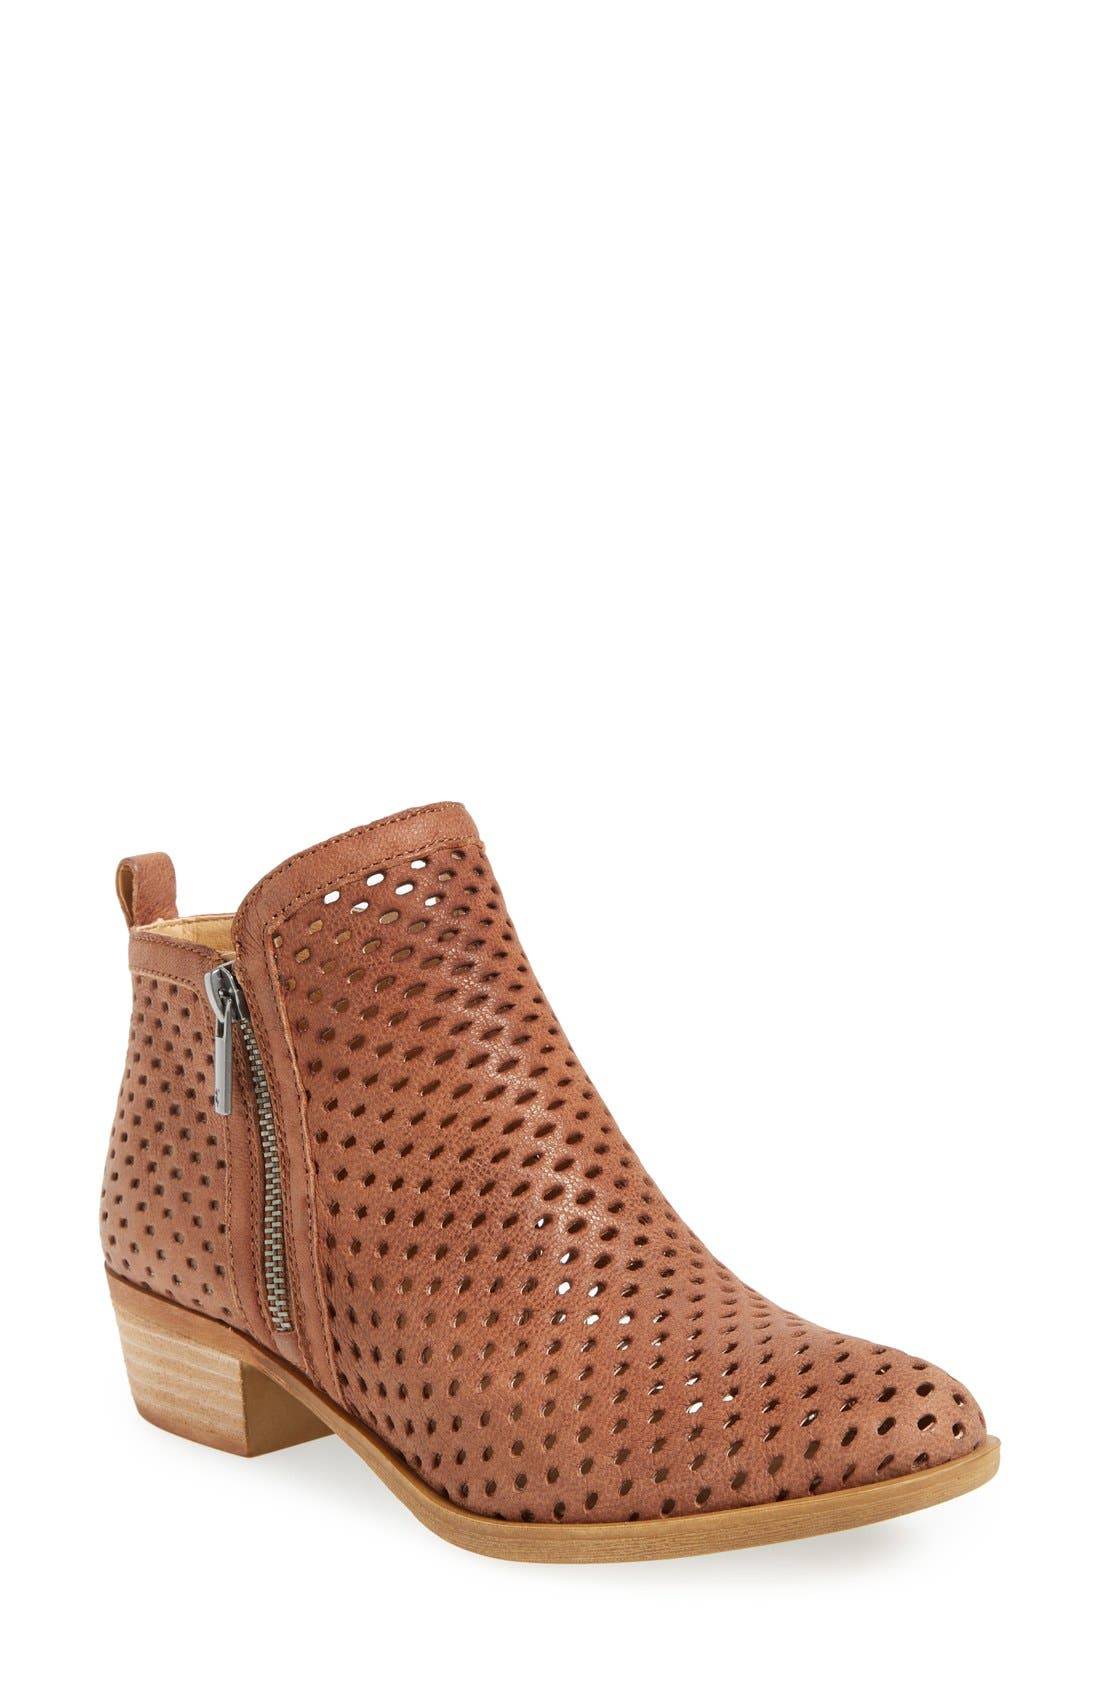 Alternate Image 1 Selected - Lucky Brand Basel Perforated Bootie (Women)